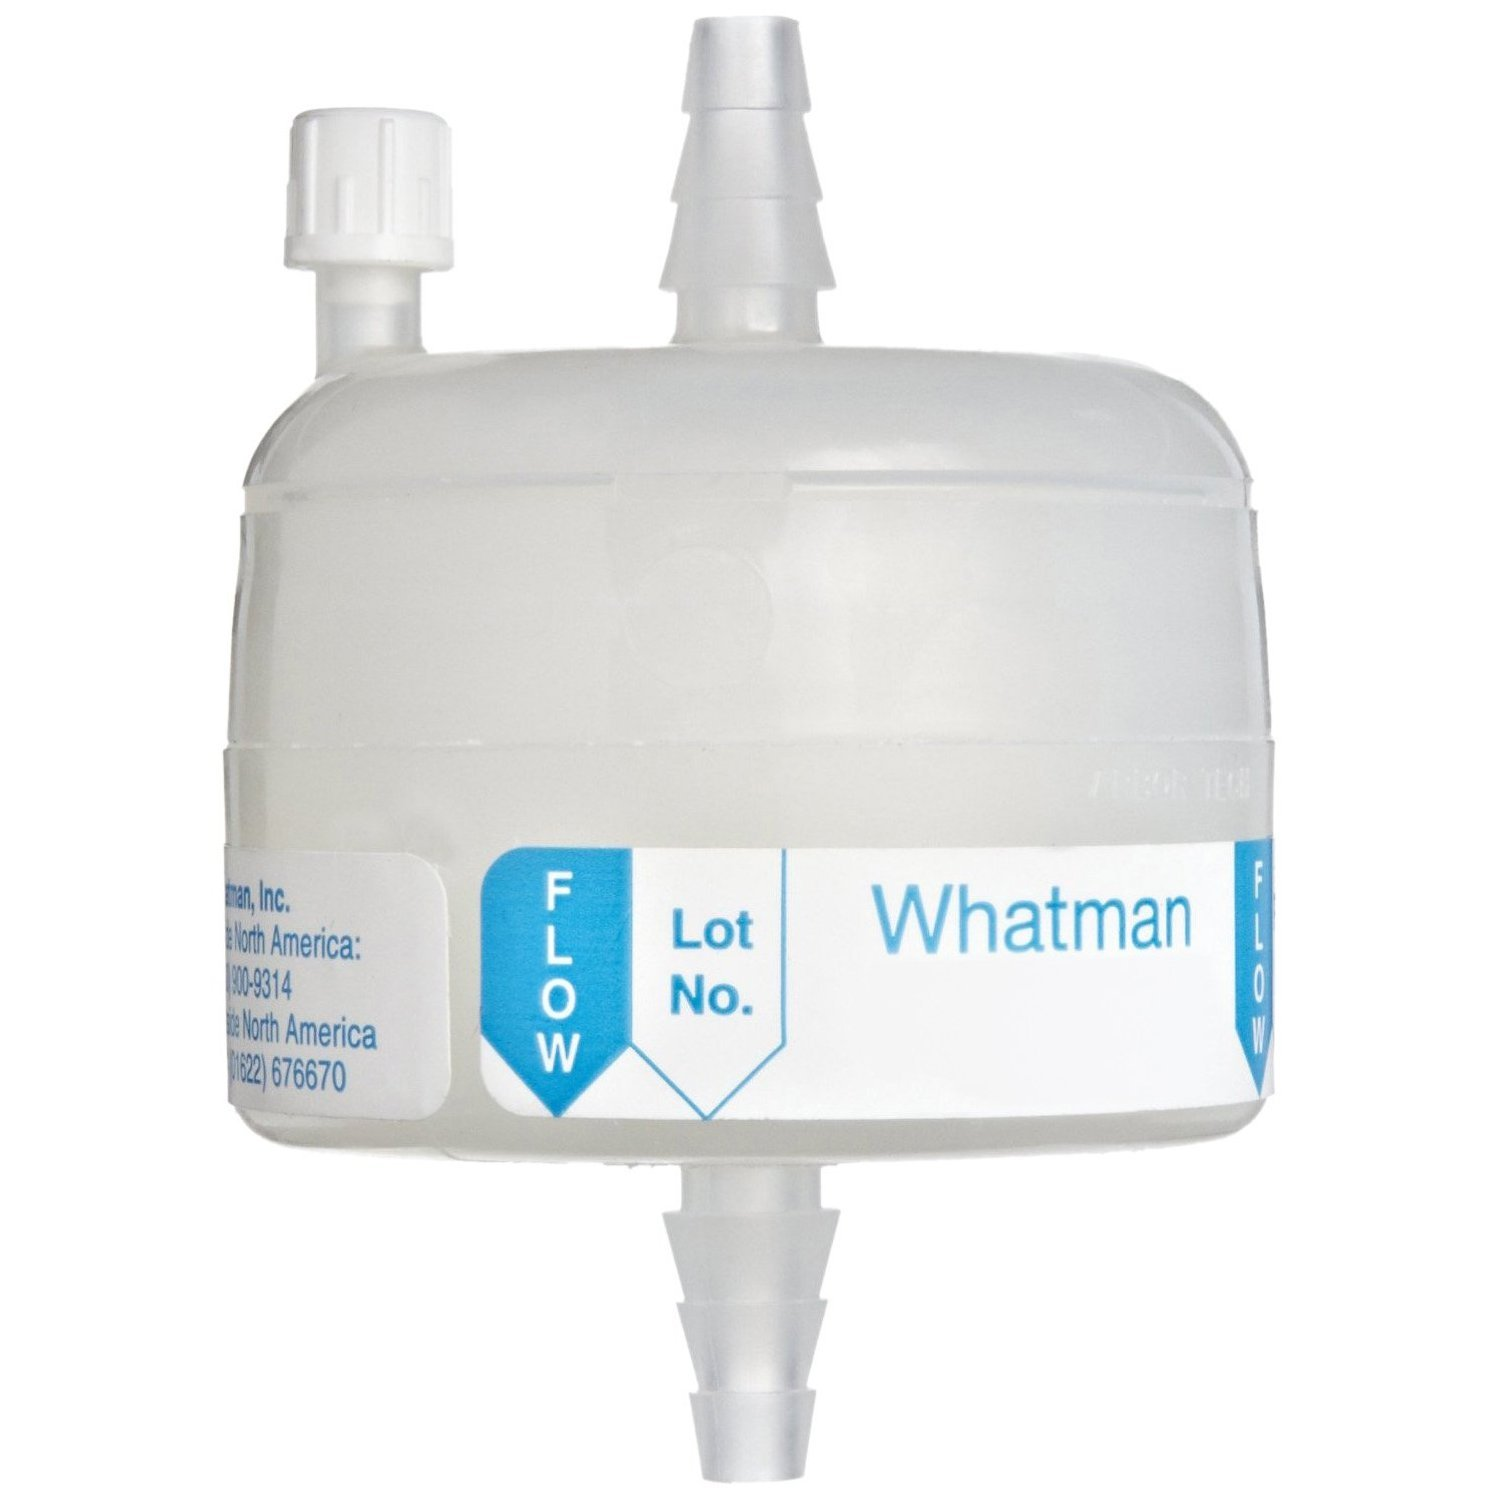 Whatman 6714-7502 Polycap TC 75 Polyethersulfone Membrane Capsule Filter with SB Inlet and Outlet, 60 psi Maximum Pressure, 0.2/0.2 Micron